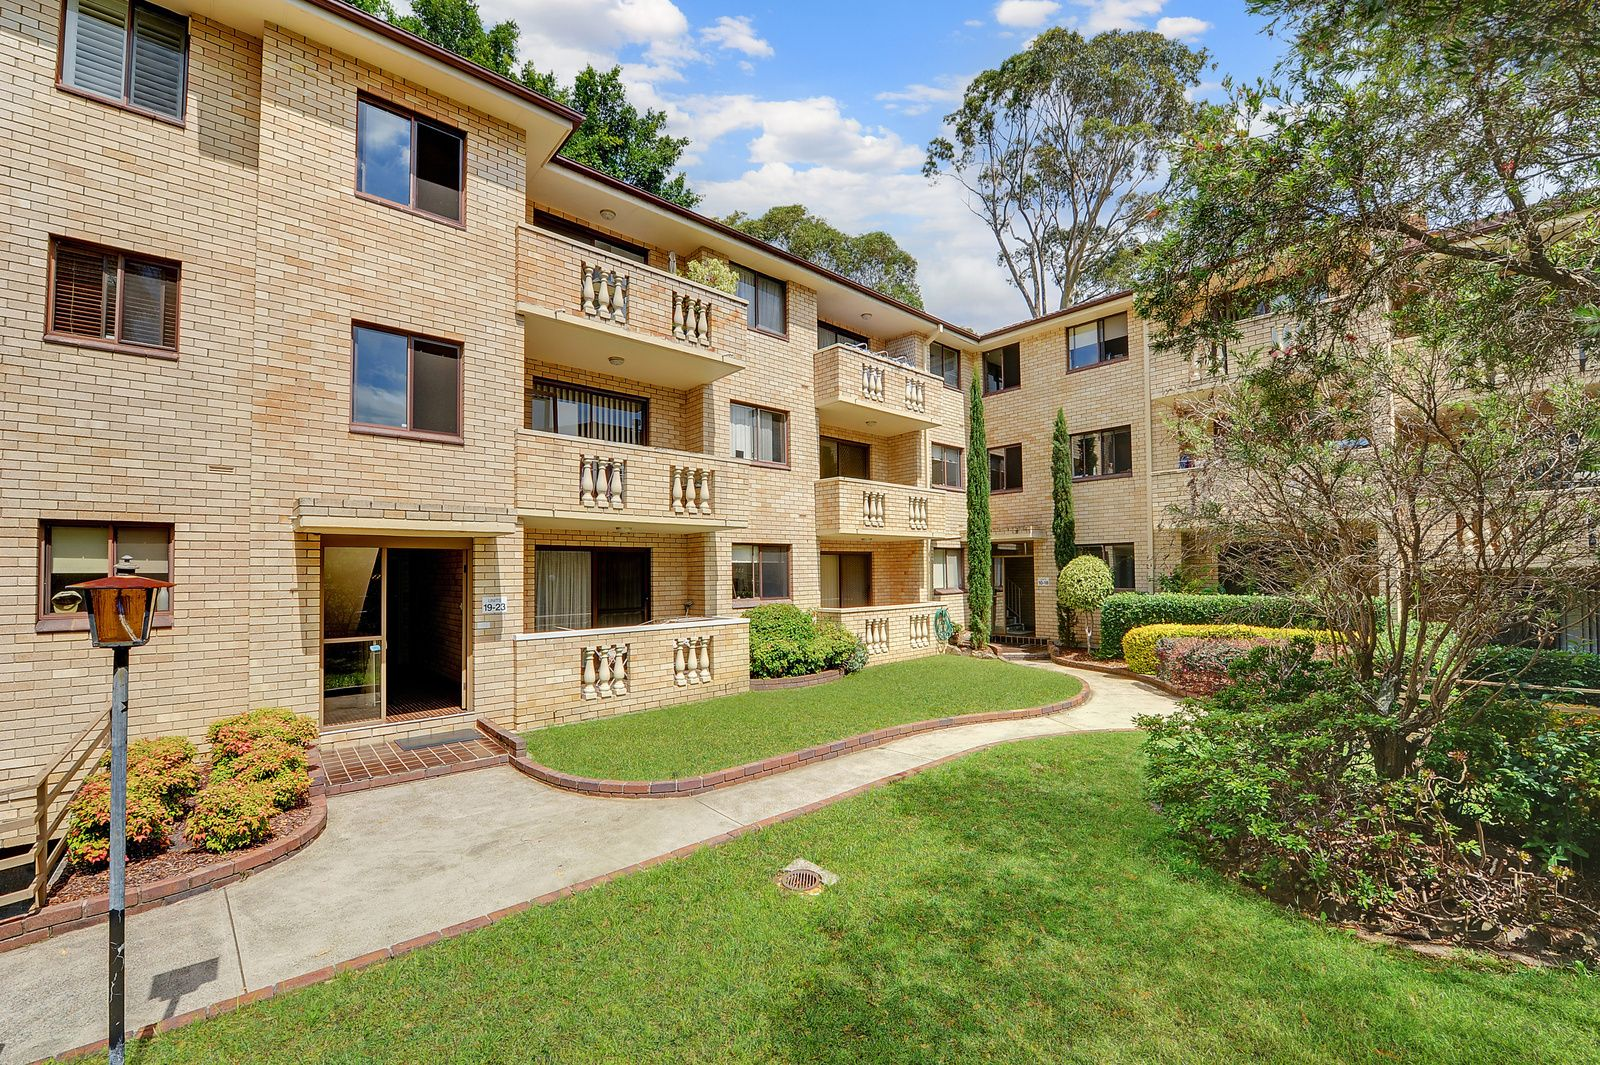 15/17 Sherbrook Road, Hornsby NSW 2077, Image 0